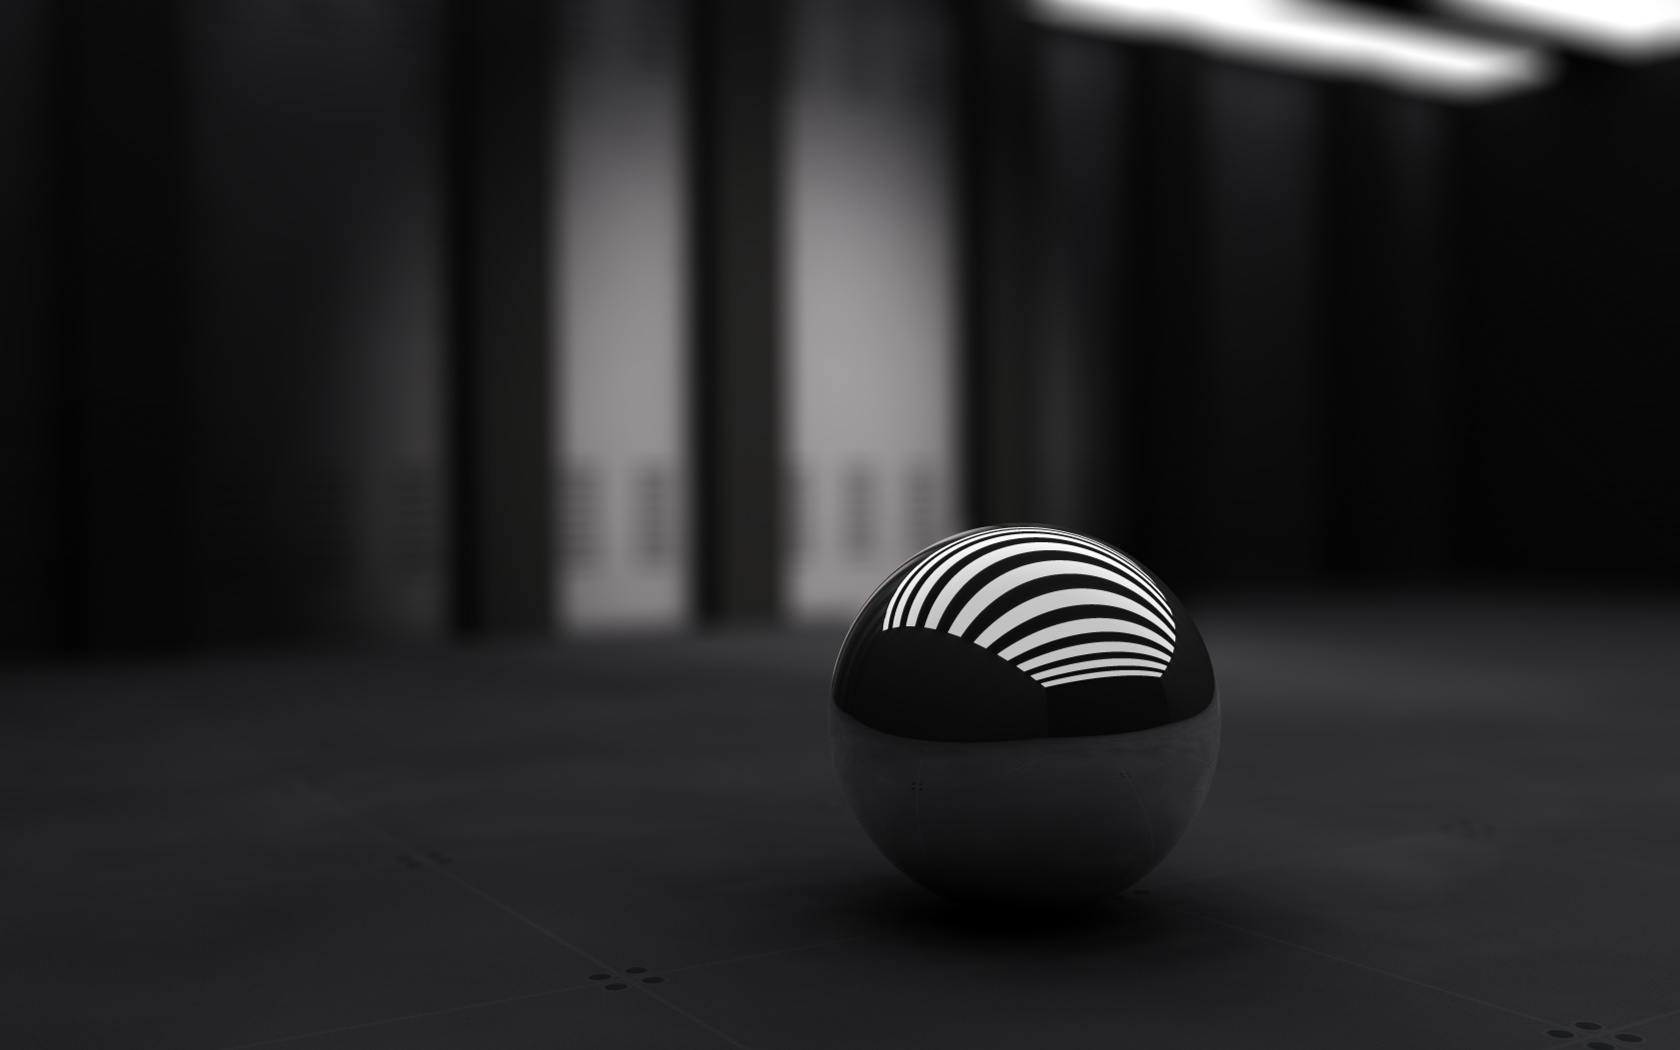 abstract wallpapers hd A2 black